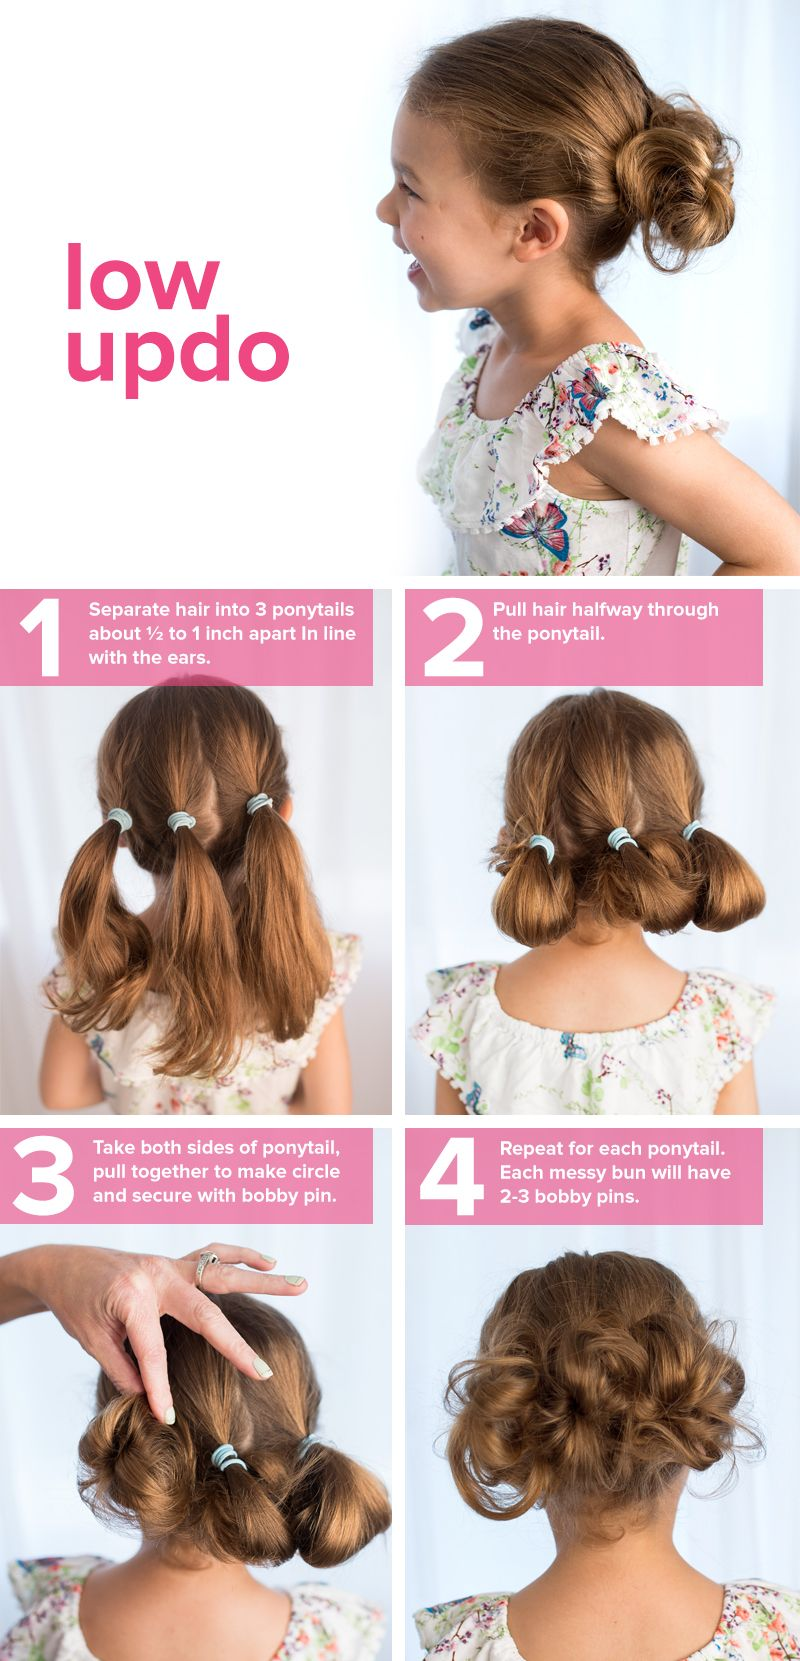 Easy Cute Hairstyles Interesting 5 Fast Easy Cute Hairstyles For Girls  Pinterest  Low Updo Updo